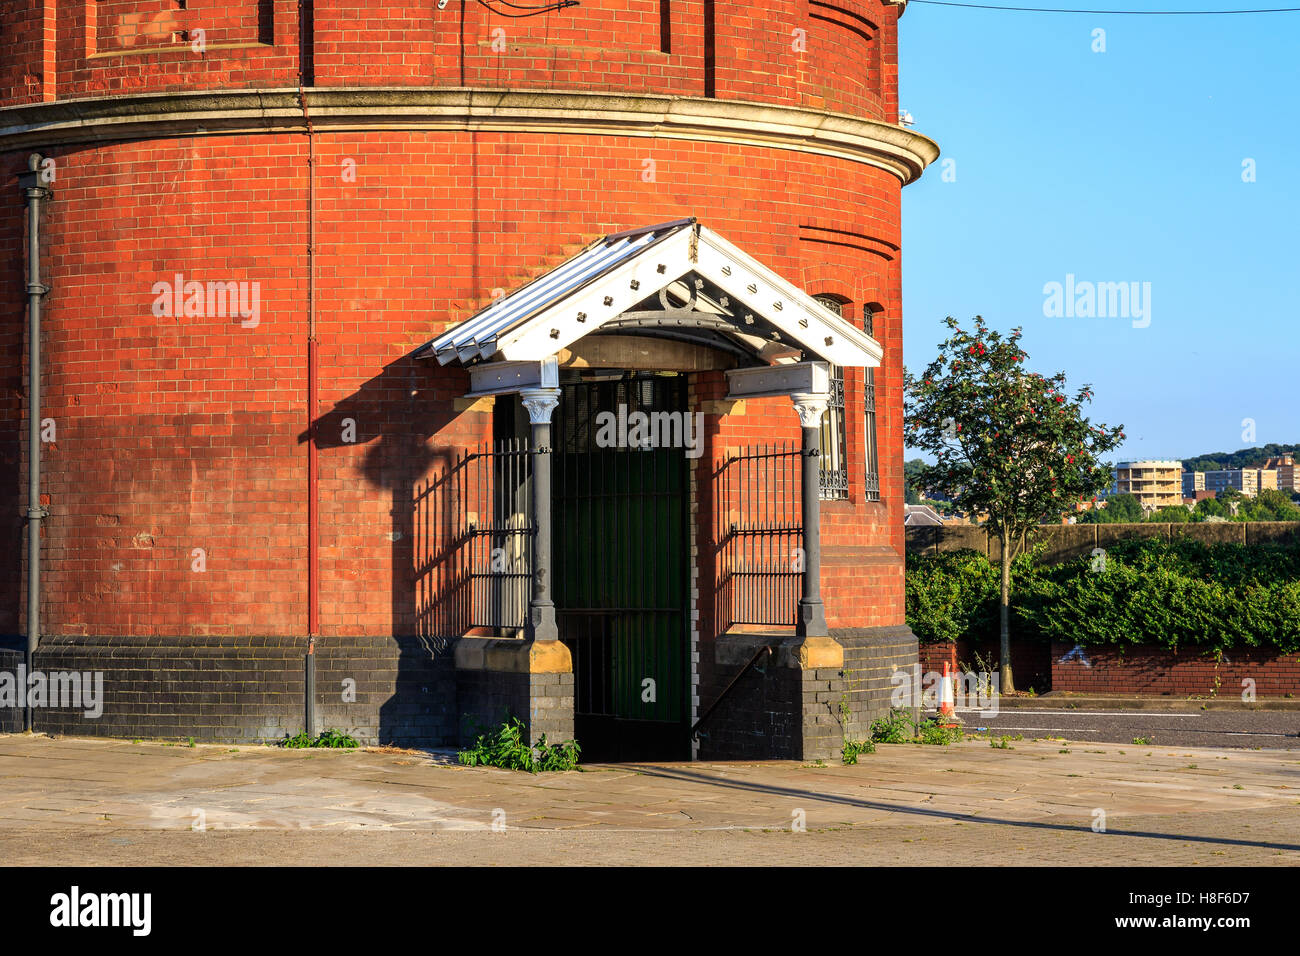 North entrance of Woolwich foot tunnel in East London - Stock Image